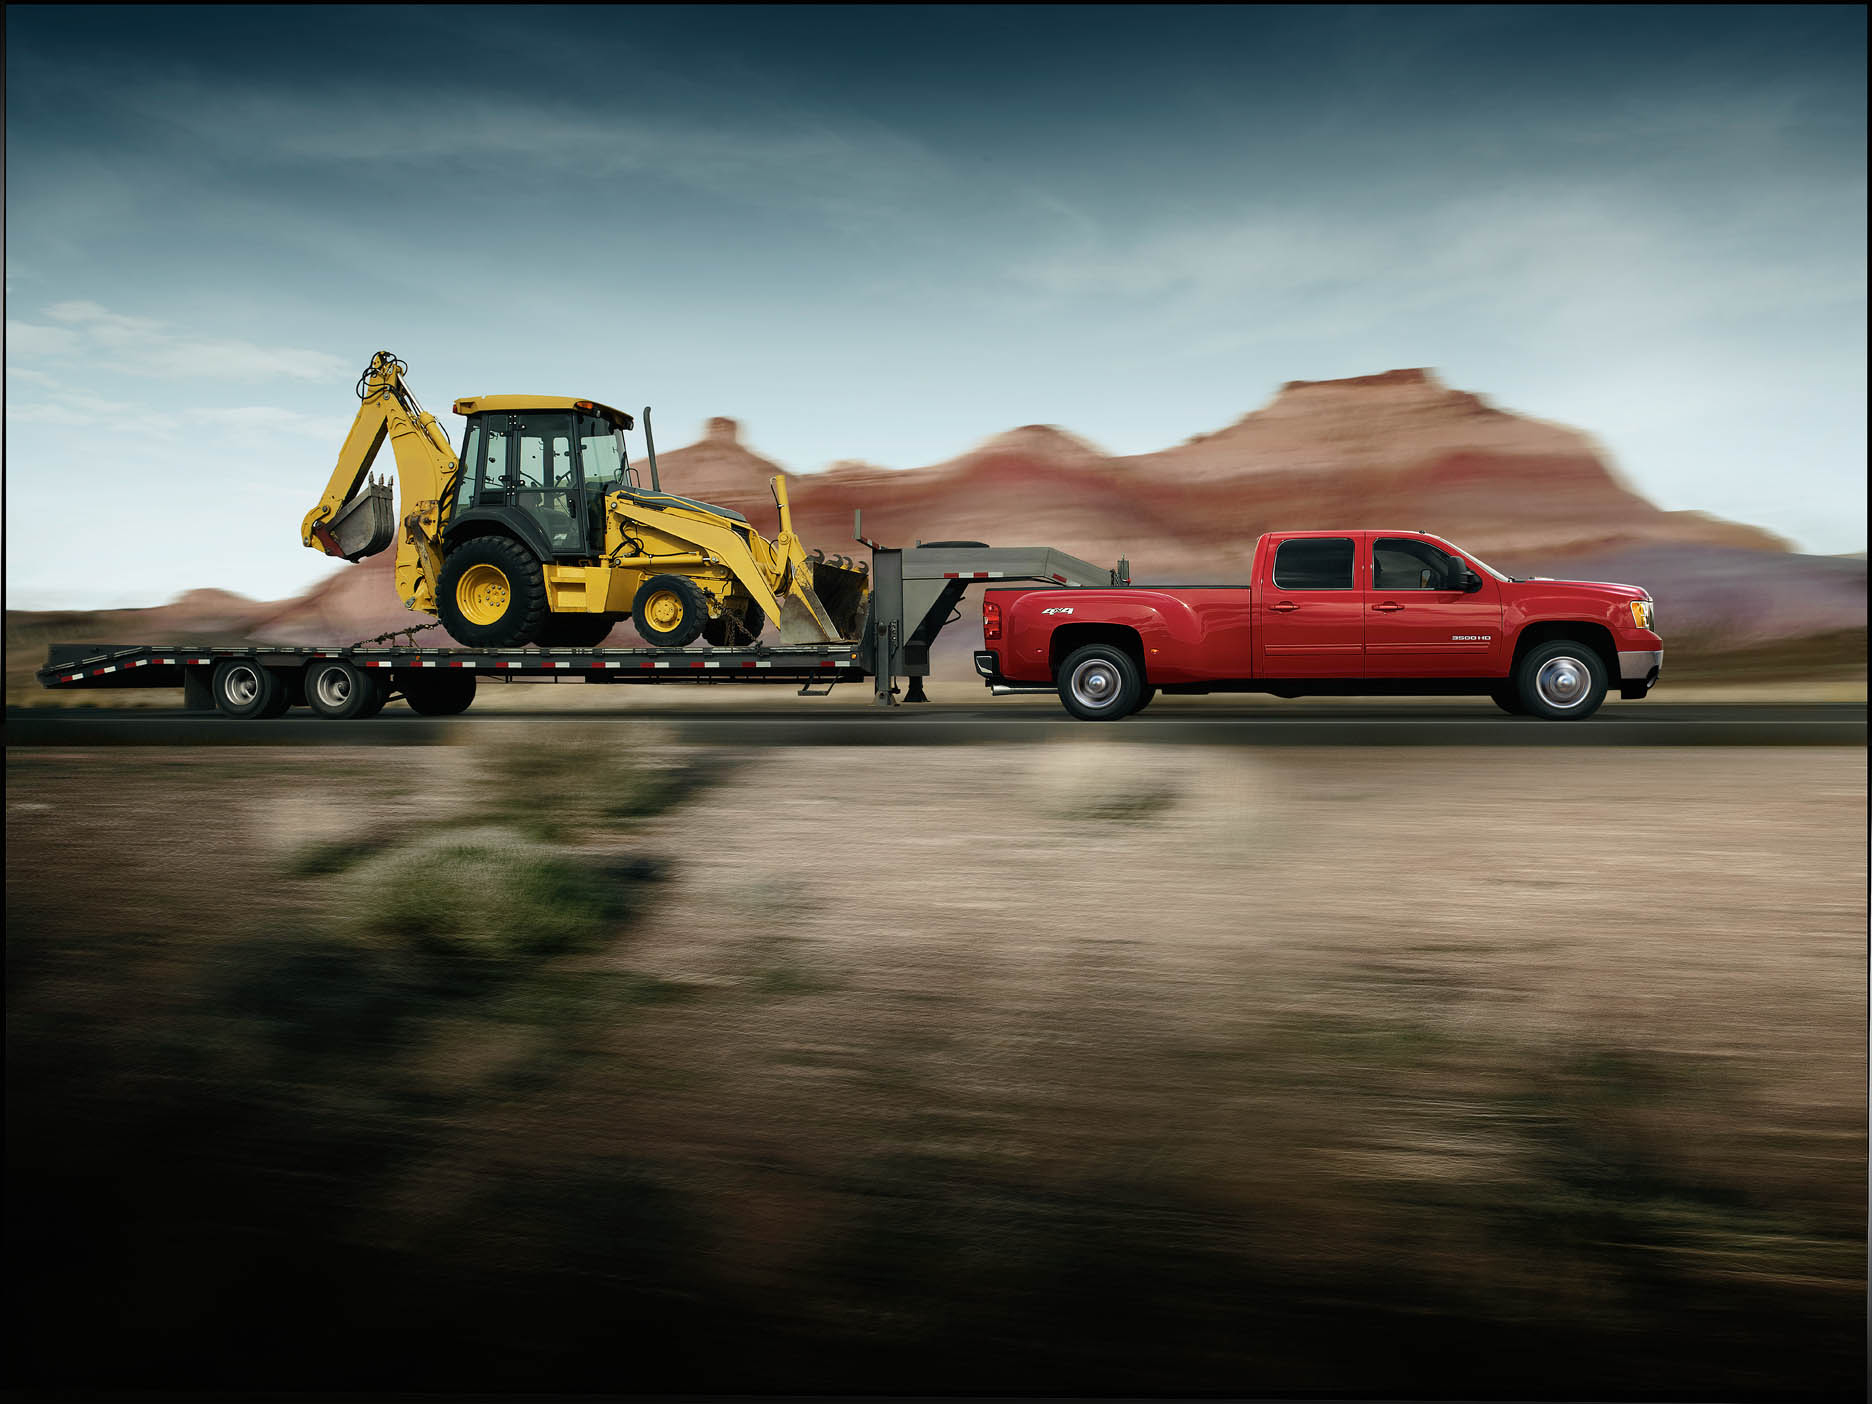 Gmc Sierra 3500hd Wins Best Overall Hd Truck 3500 Dually Download This Photo